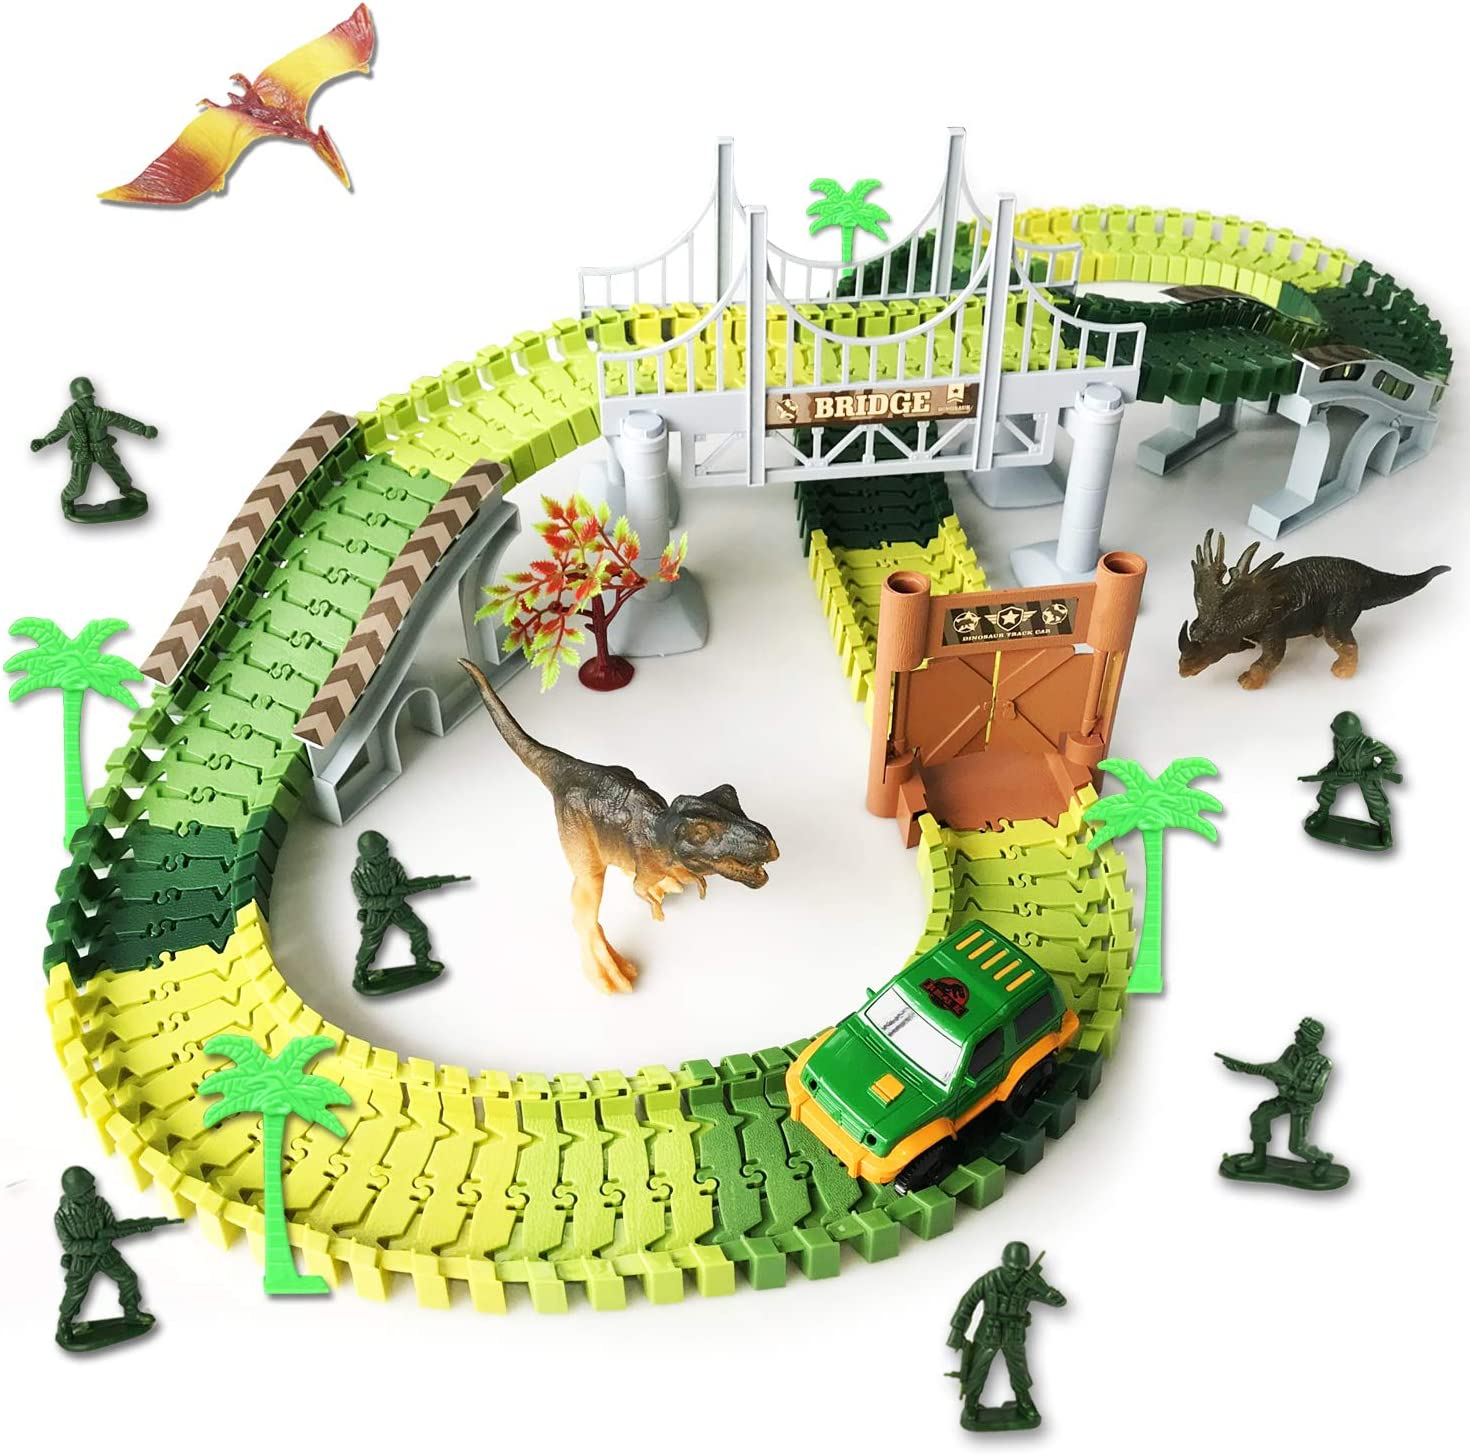 Create Your Own Dinosaur Race Track with Flexible Track 2 Cool Battery Powered Dinosaur Cars Stocking Stuffers for 3 Years Old /& Up Boys Girls Christmas Gift 2 Realistic Dinosaur Figures Best Birthday Gift 1 Bridge and Many Fun Accessories